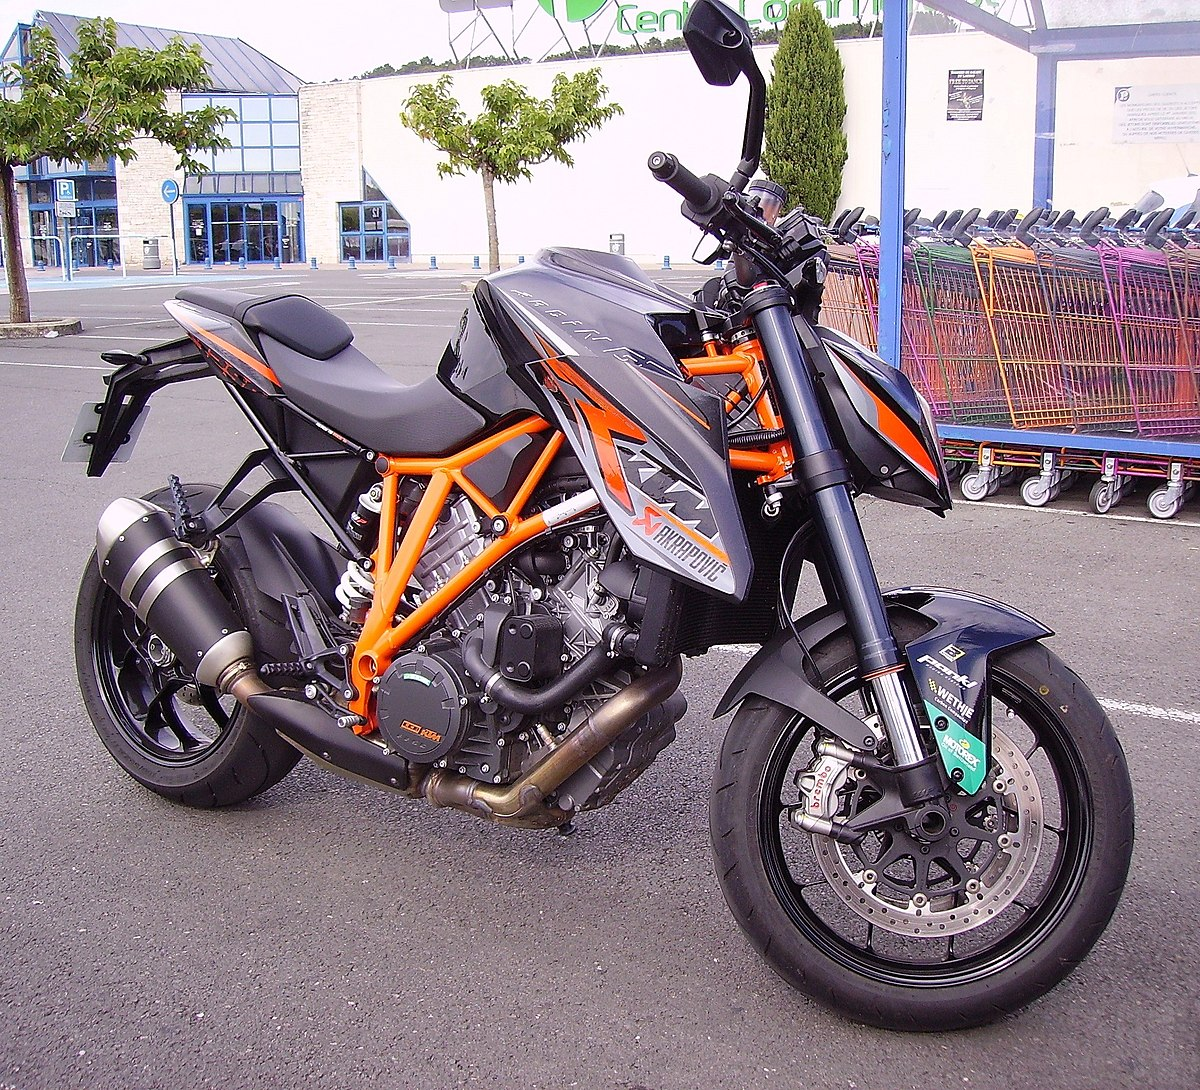 ktm 1290 super duke r wikipedia. Black Bedroom Furniture Sets. Home Design Ideas